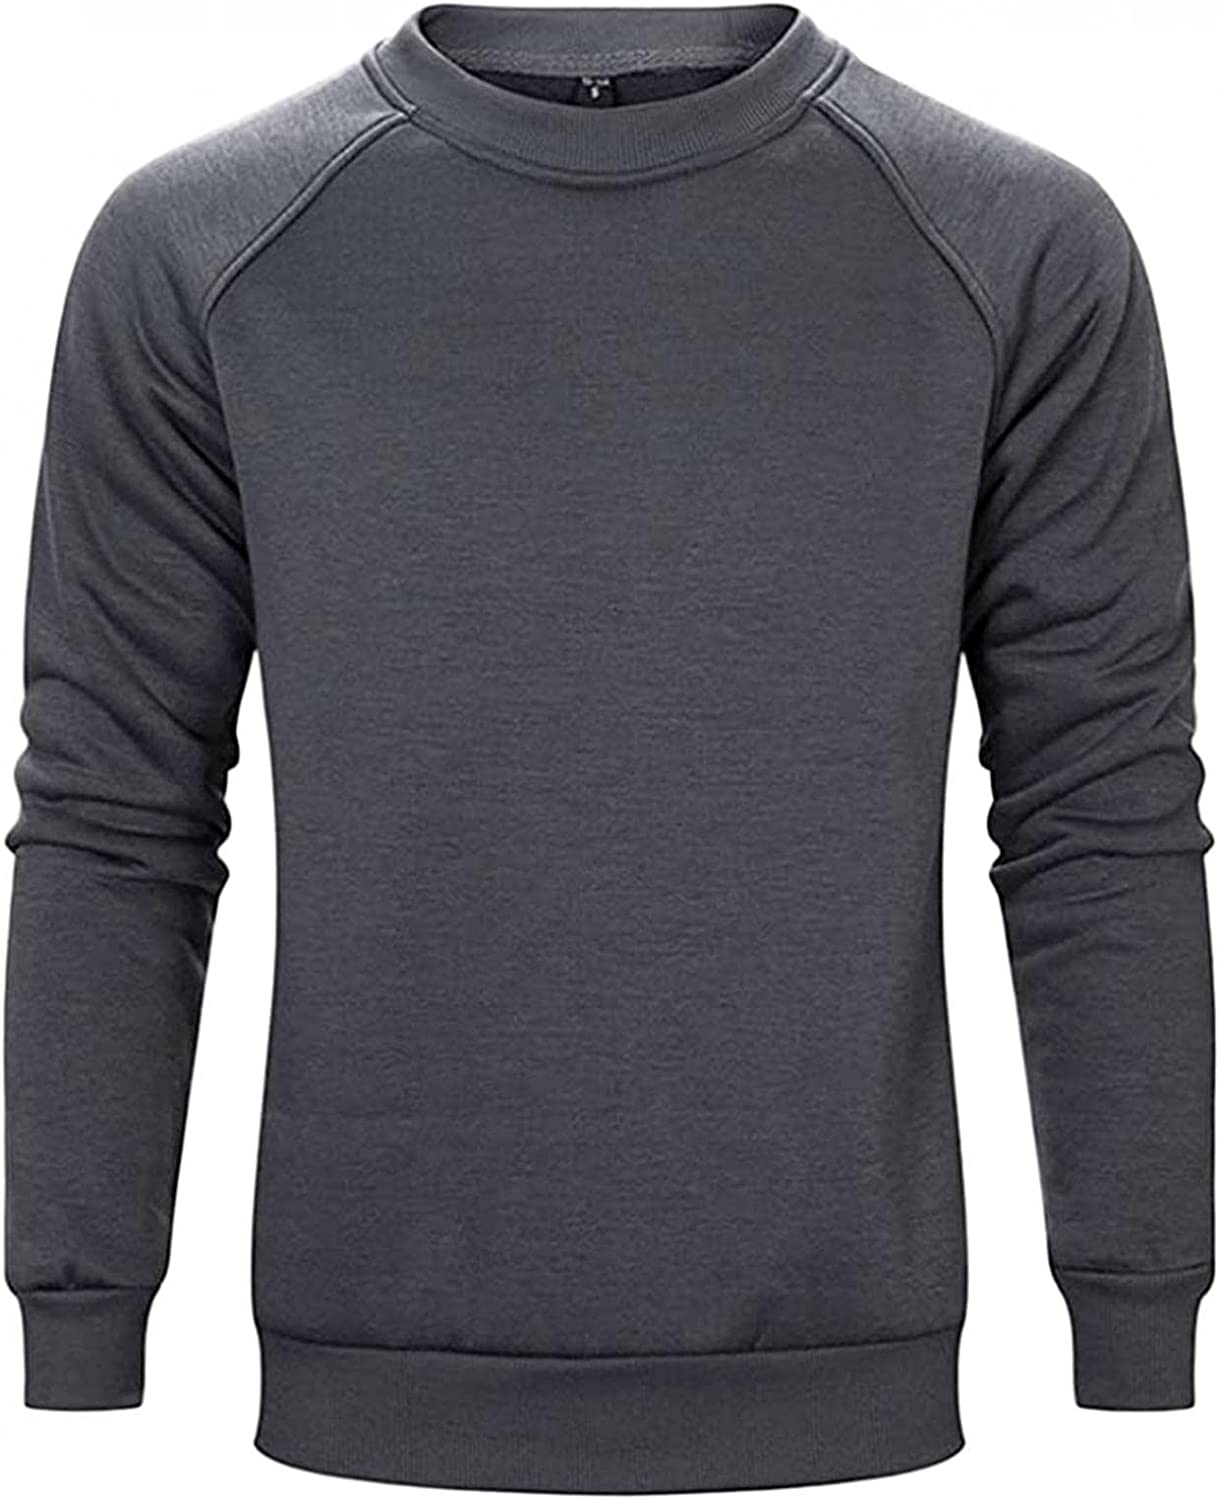 Qsctys Men's Fleece Crewneck Sweatshirts Pullover Slim Fit Long Sleeve Sports & Fitness Clothing Big and Tall T-Shirts